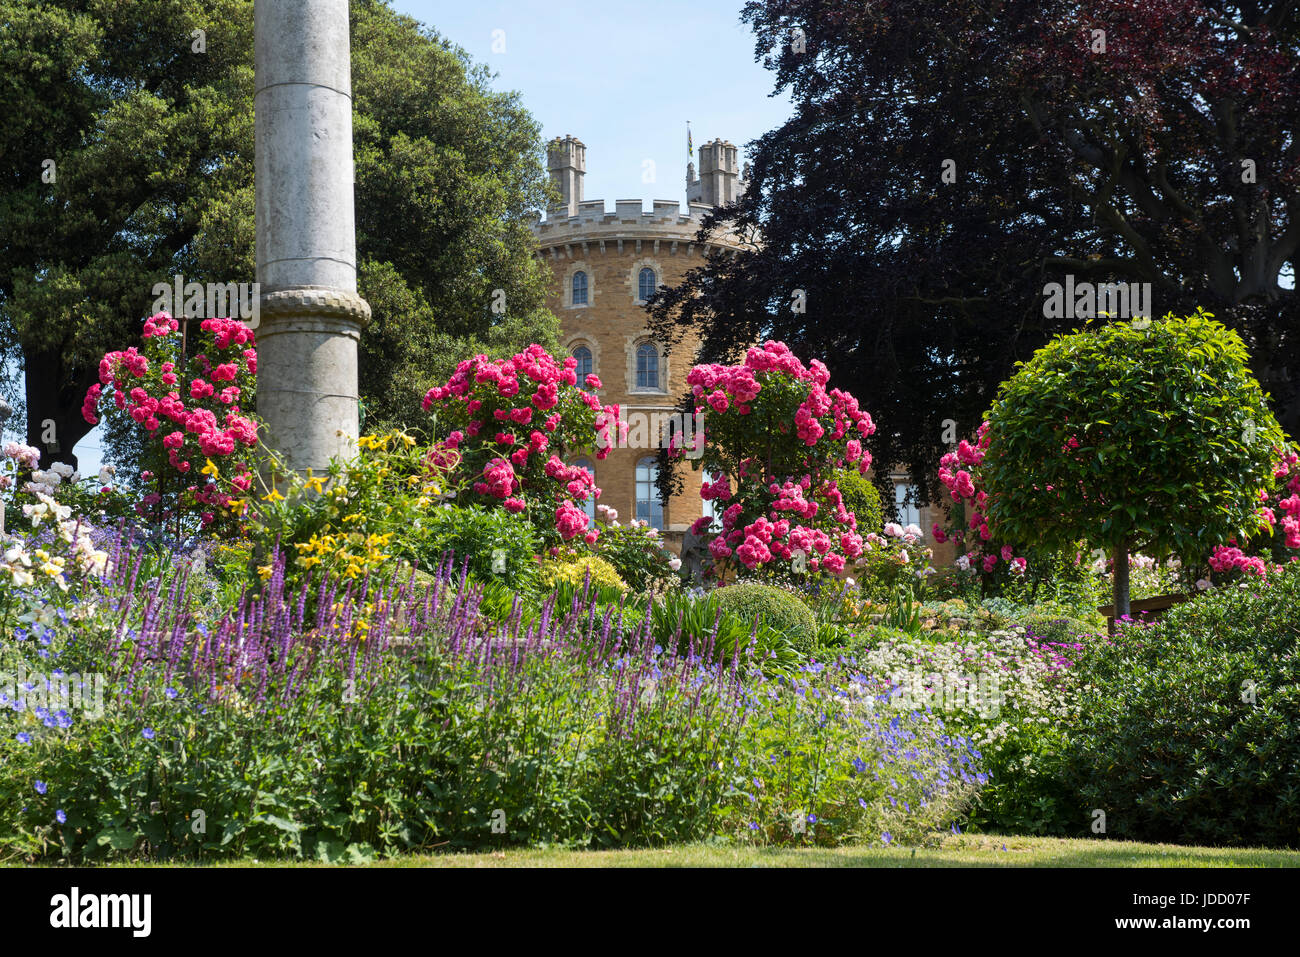 A View Of Belvoir Castle Through The Pretty Flowers In The Rose